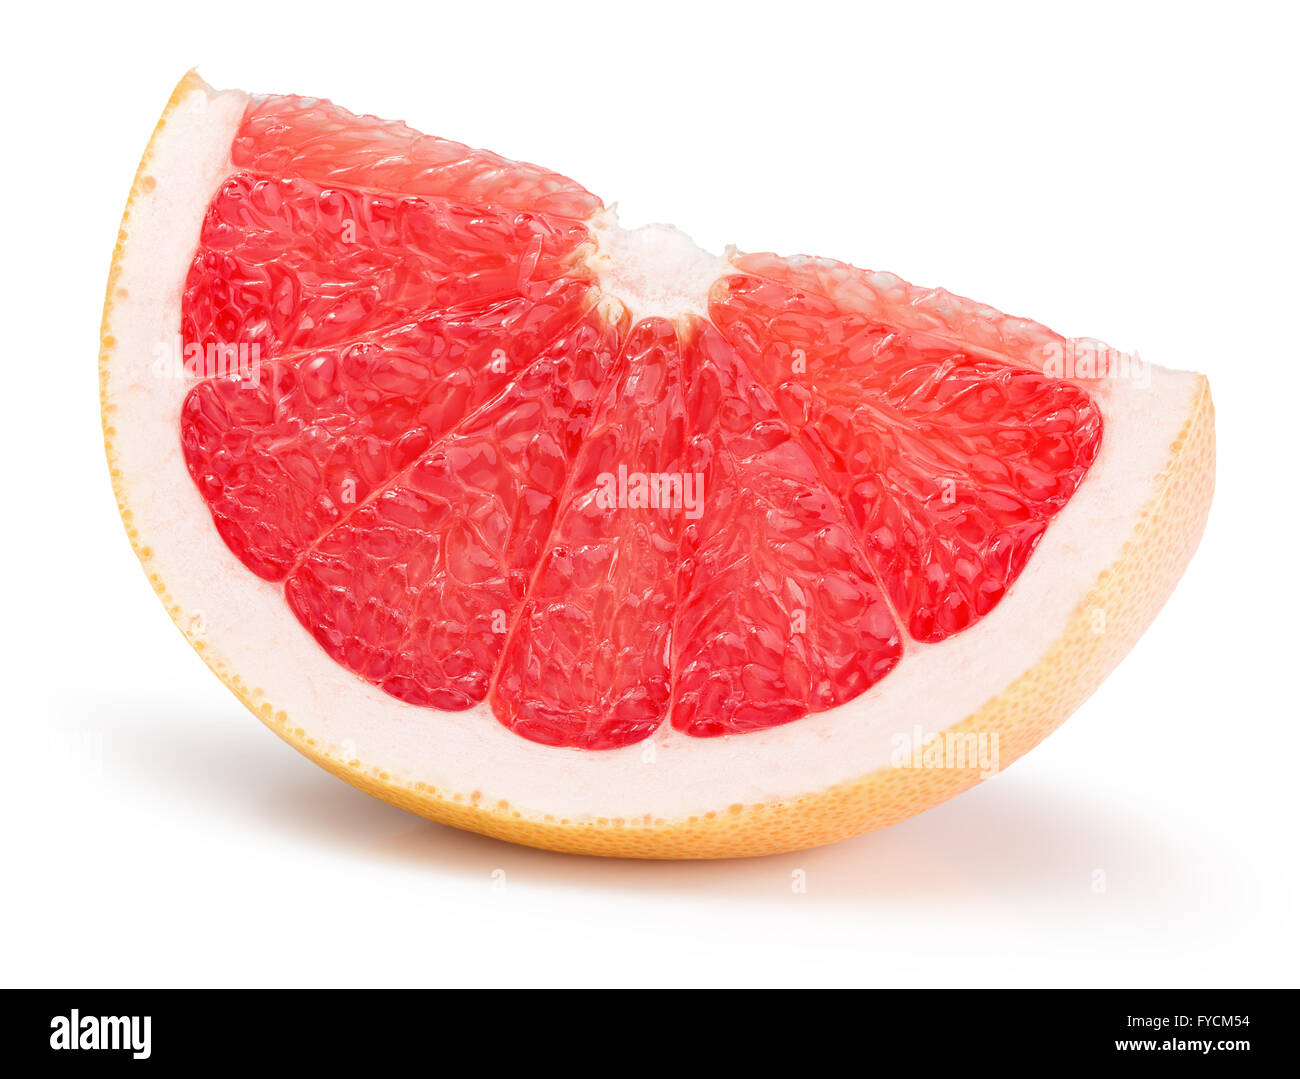 grapefruit slice isolated on the white background. - Stock Image